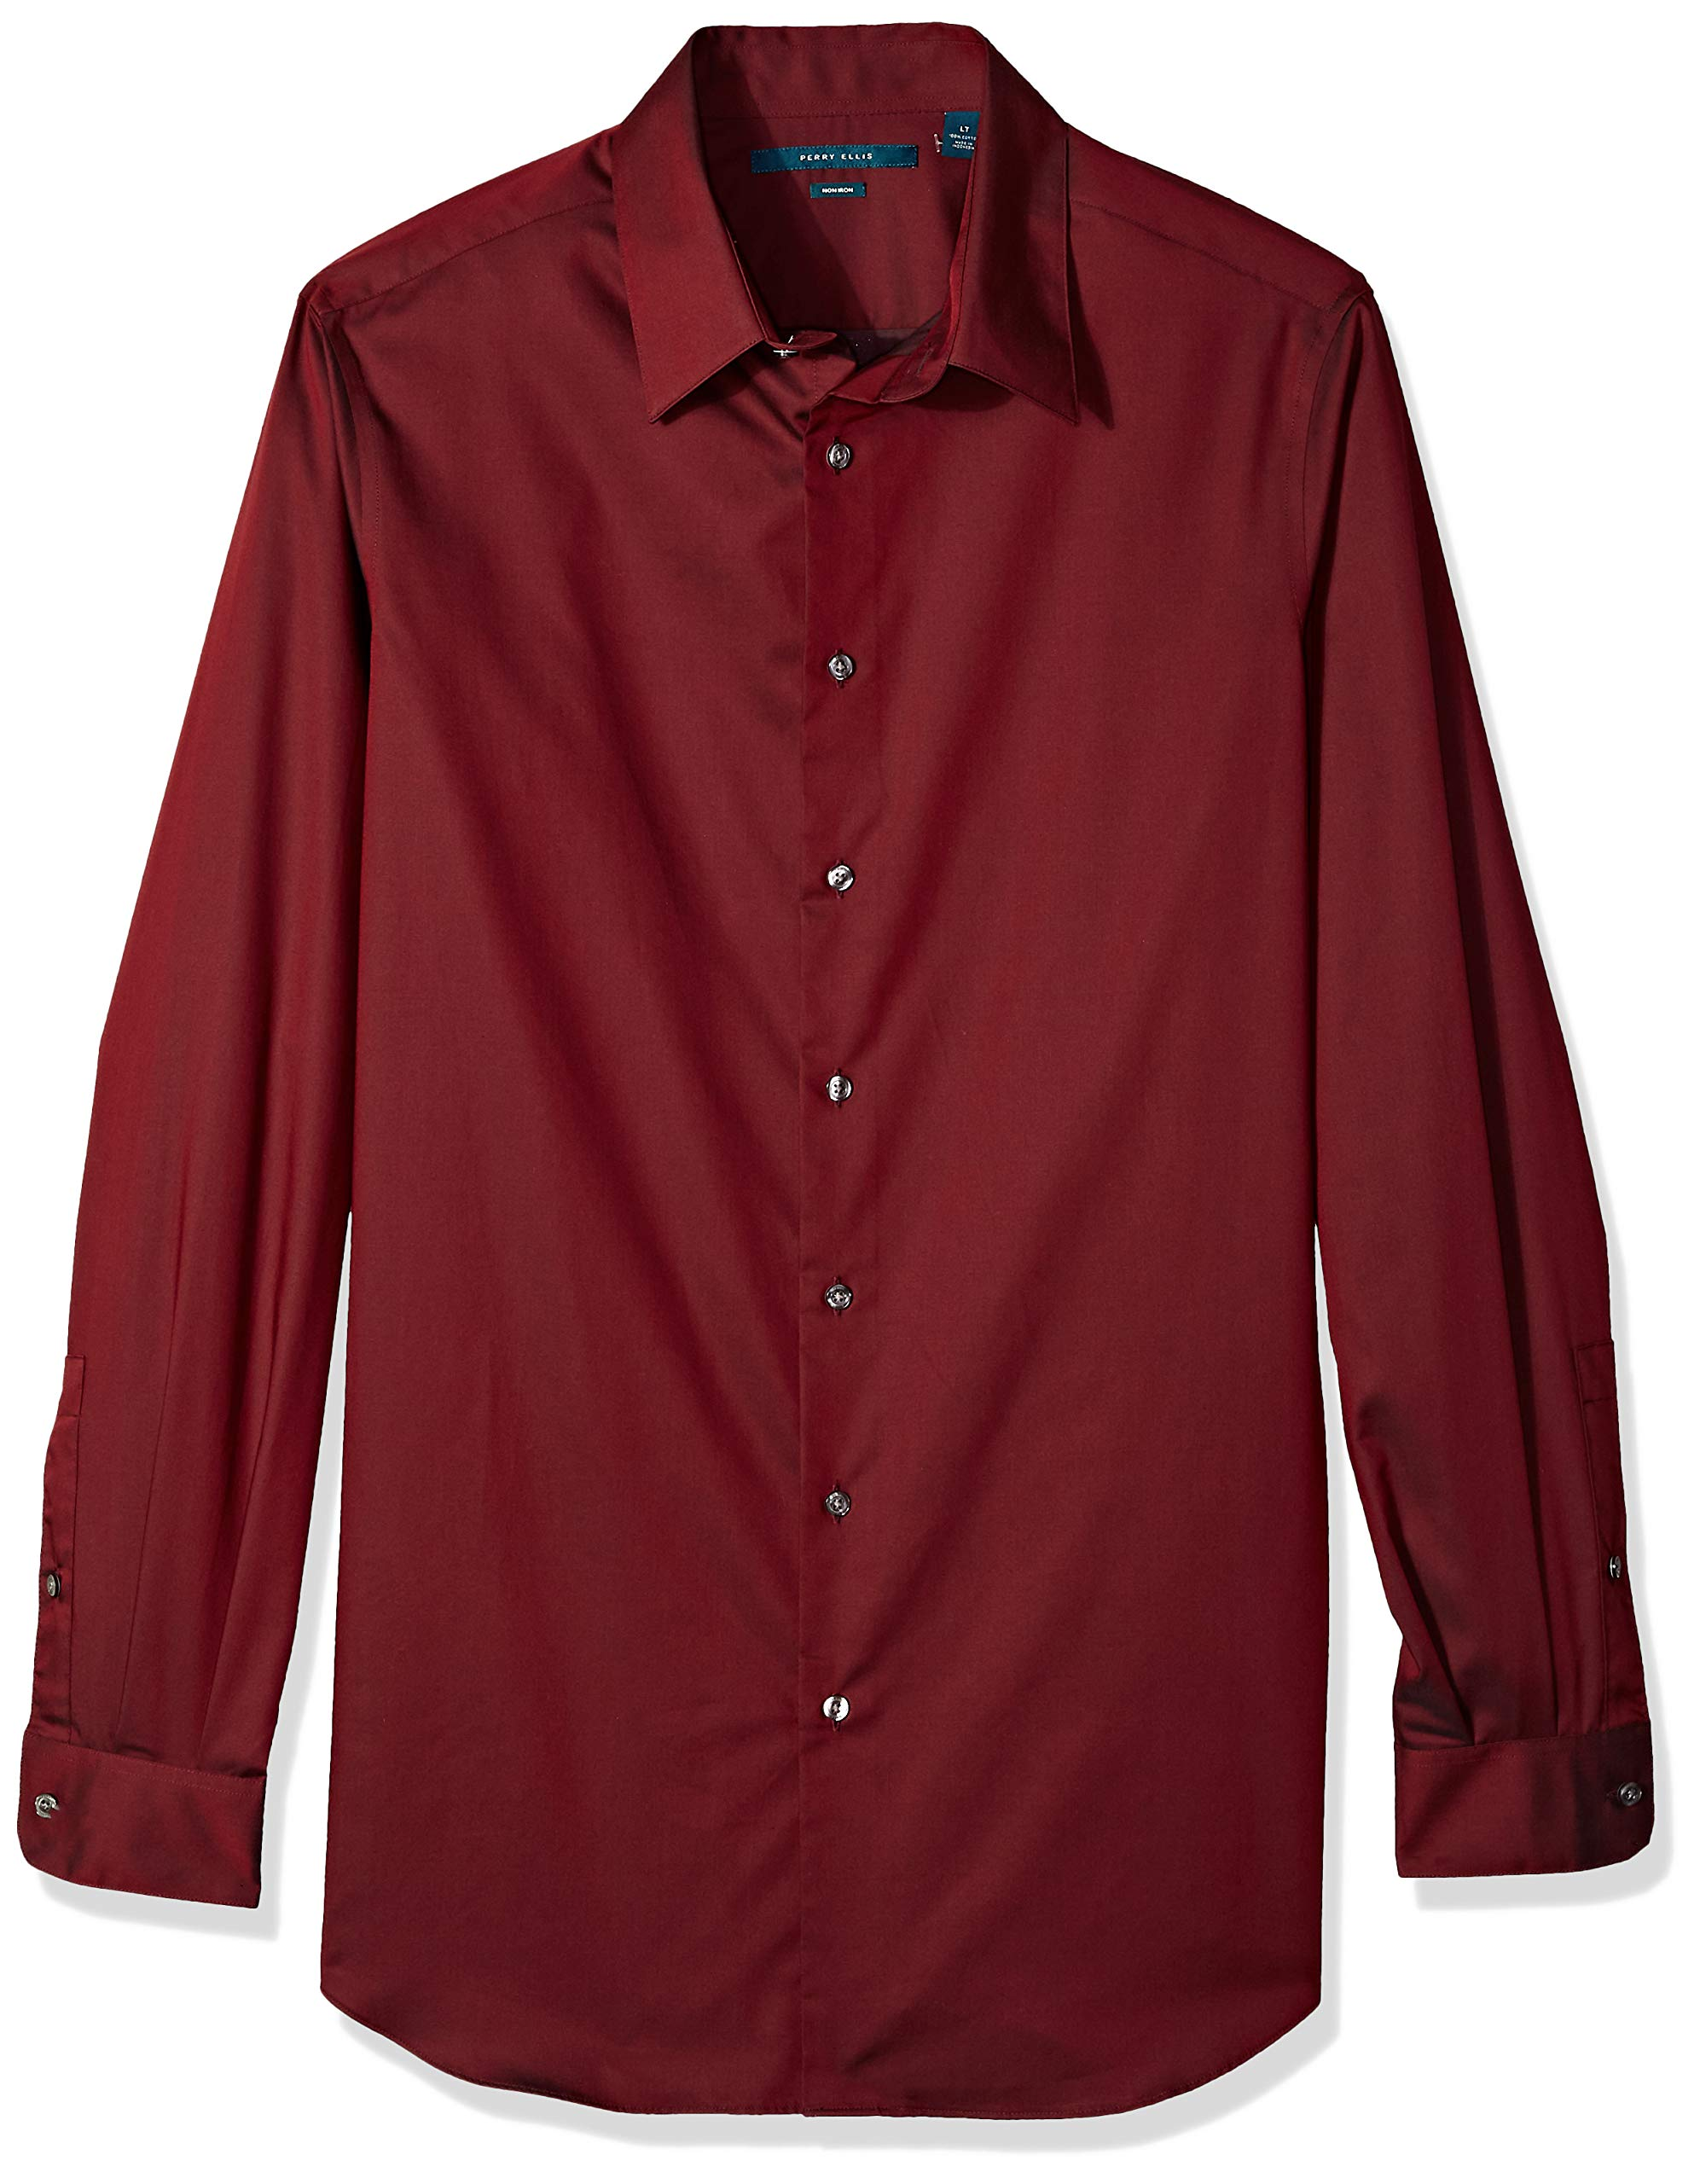 Perry Ellis Men's Tall Non-Iron Travel Luxe Solid Shirt, Burnt Russet, 3X Big